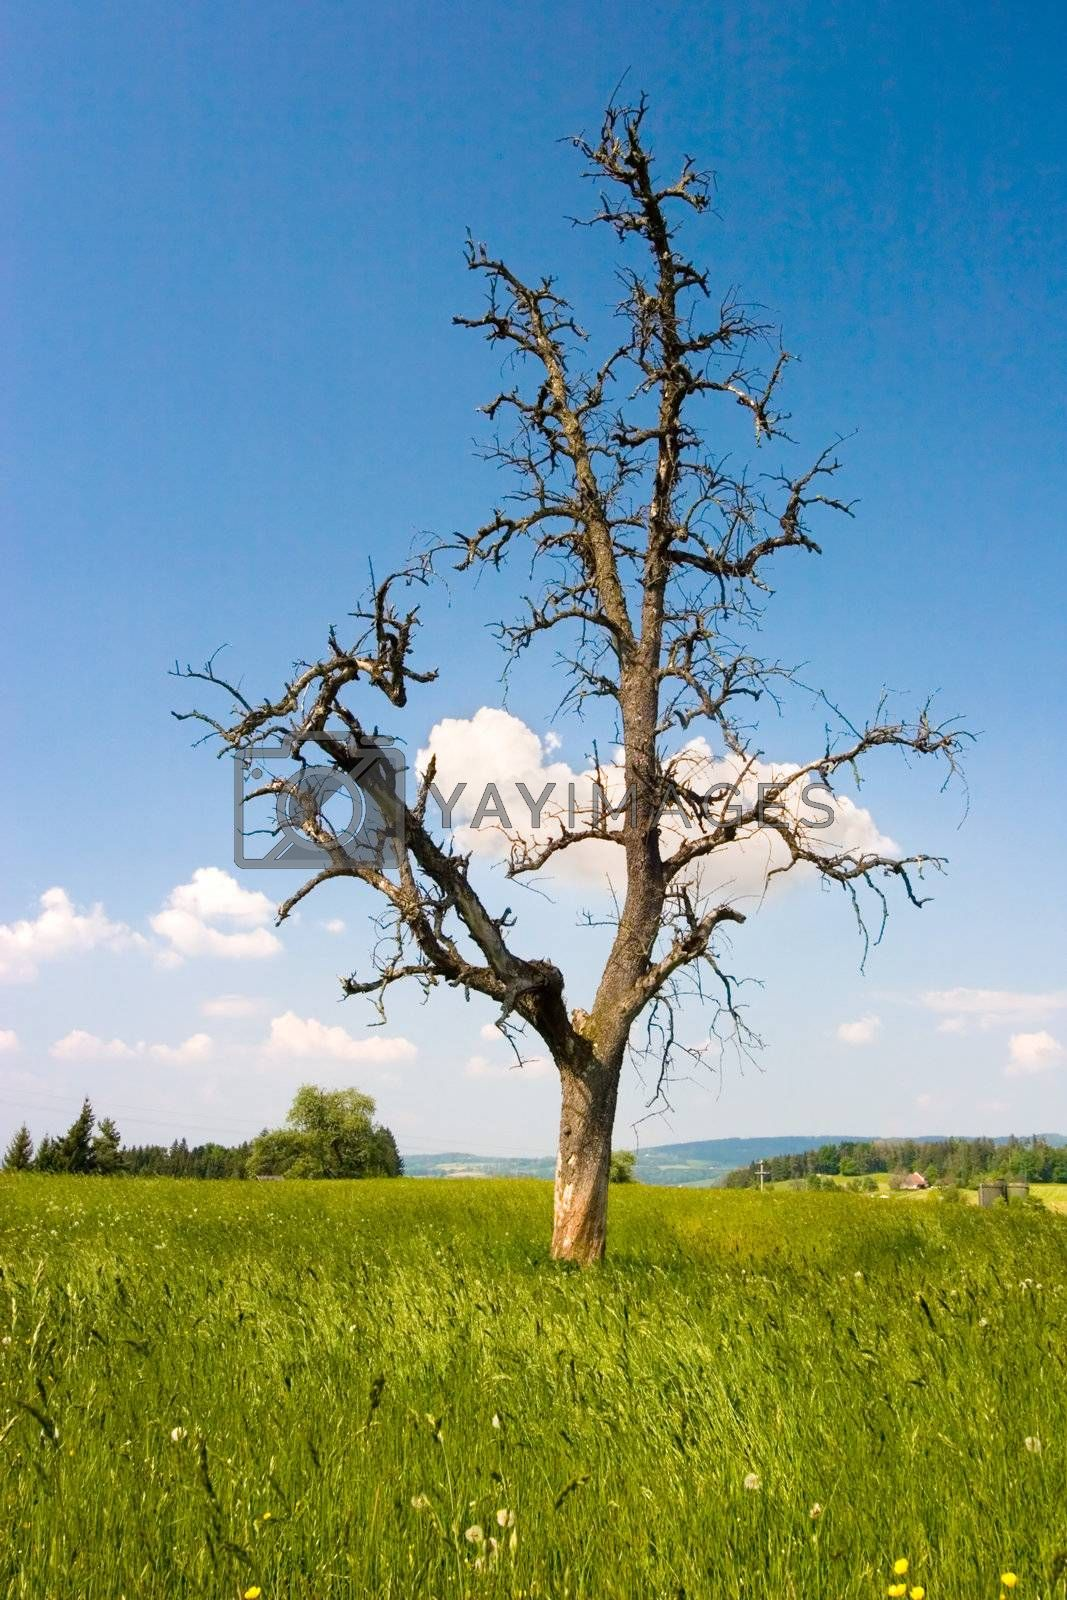 A nude tree on a green field with blue sky and fluffy clouds